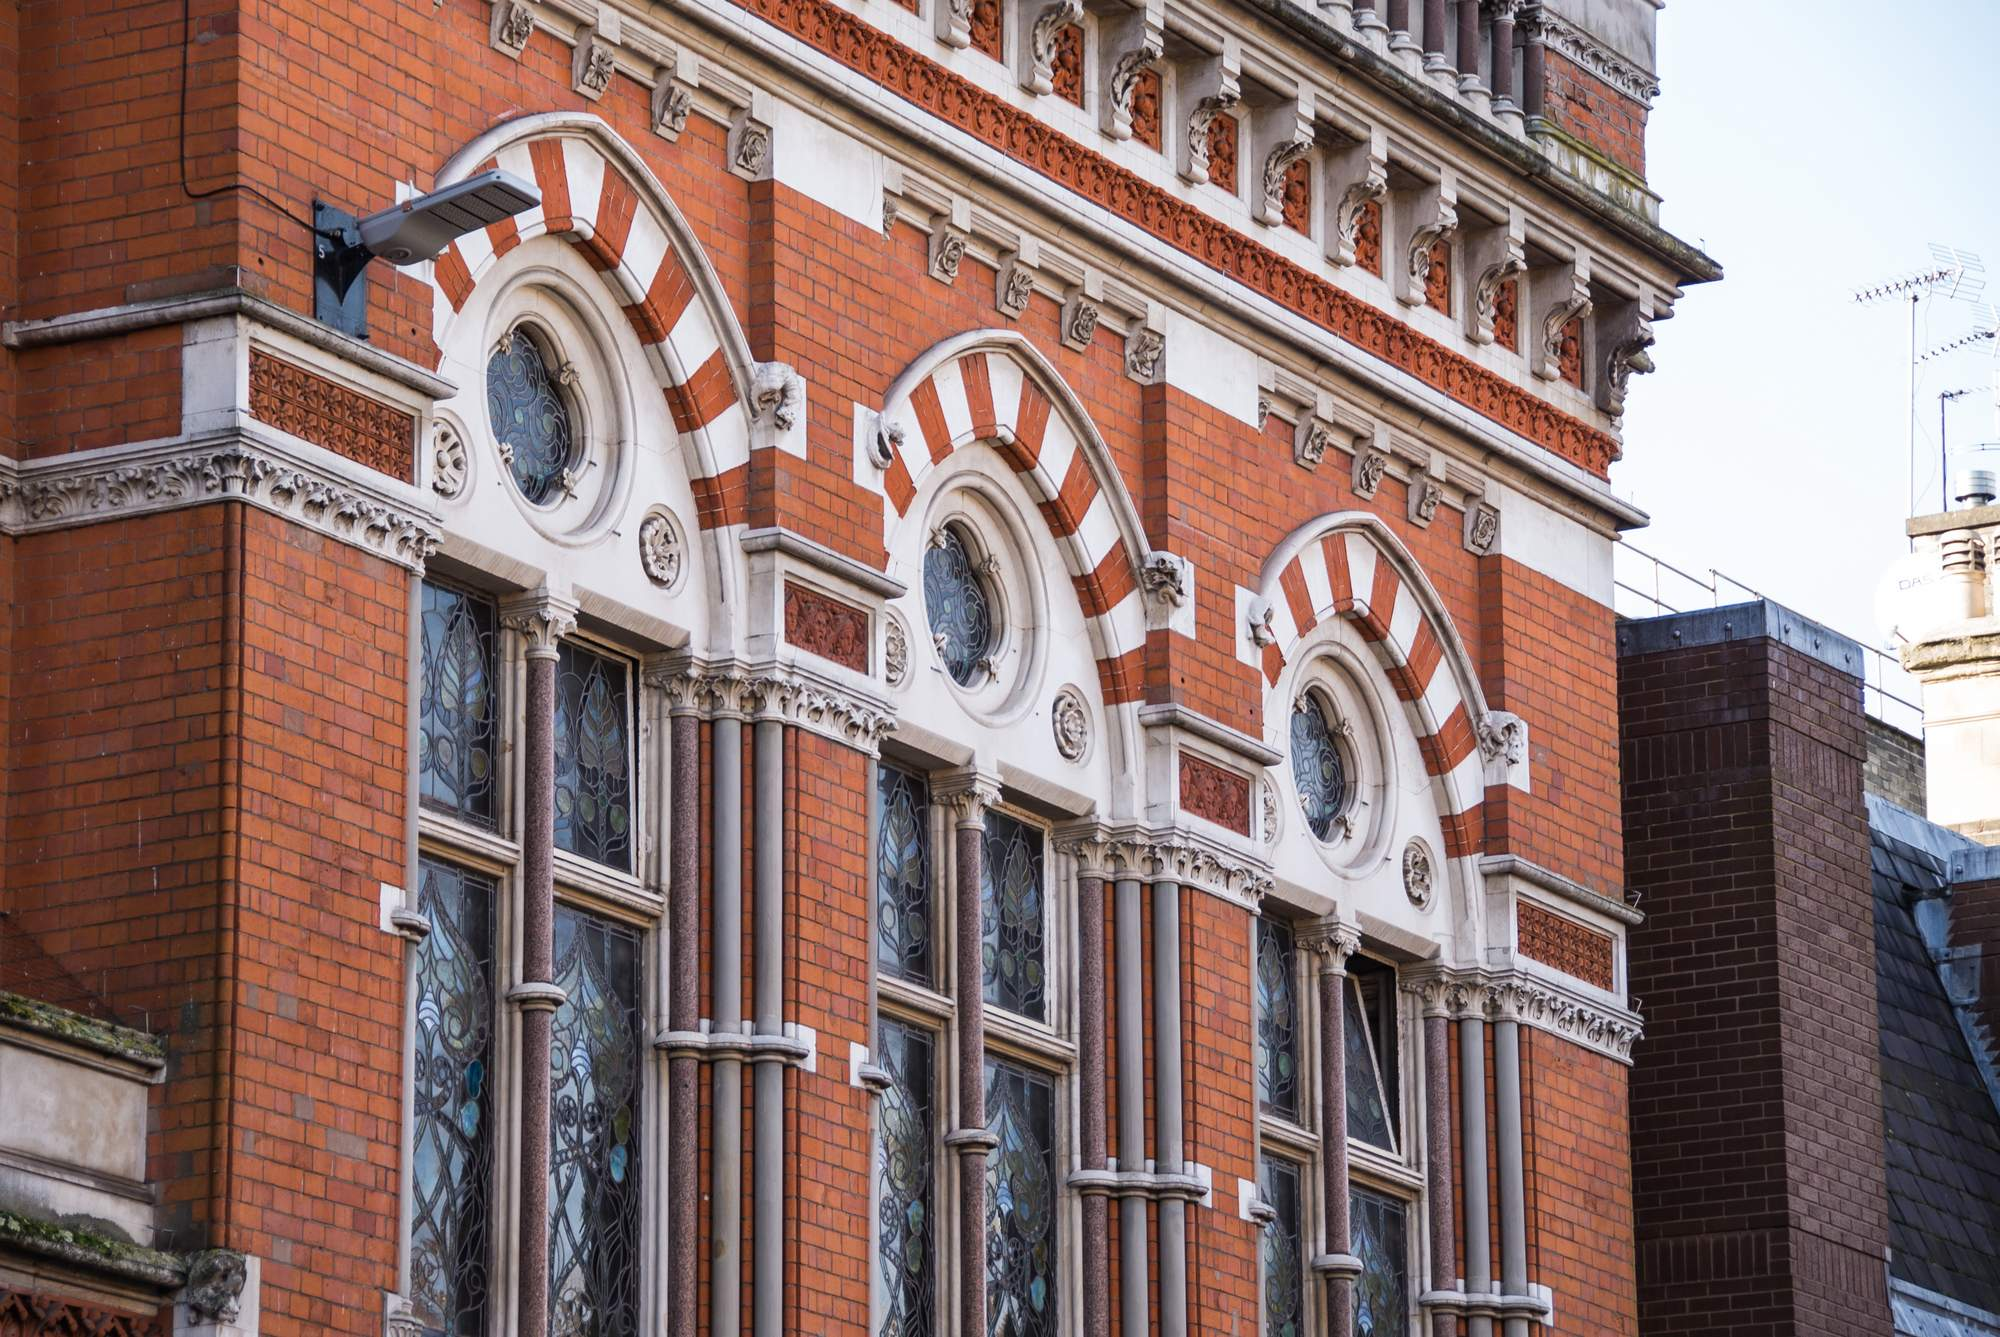 The ornate brickwork is a key feature of the design -